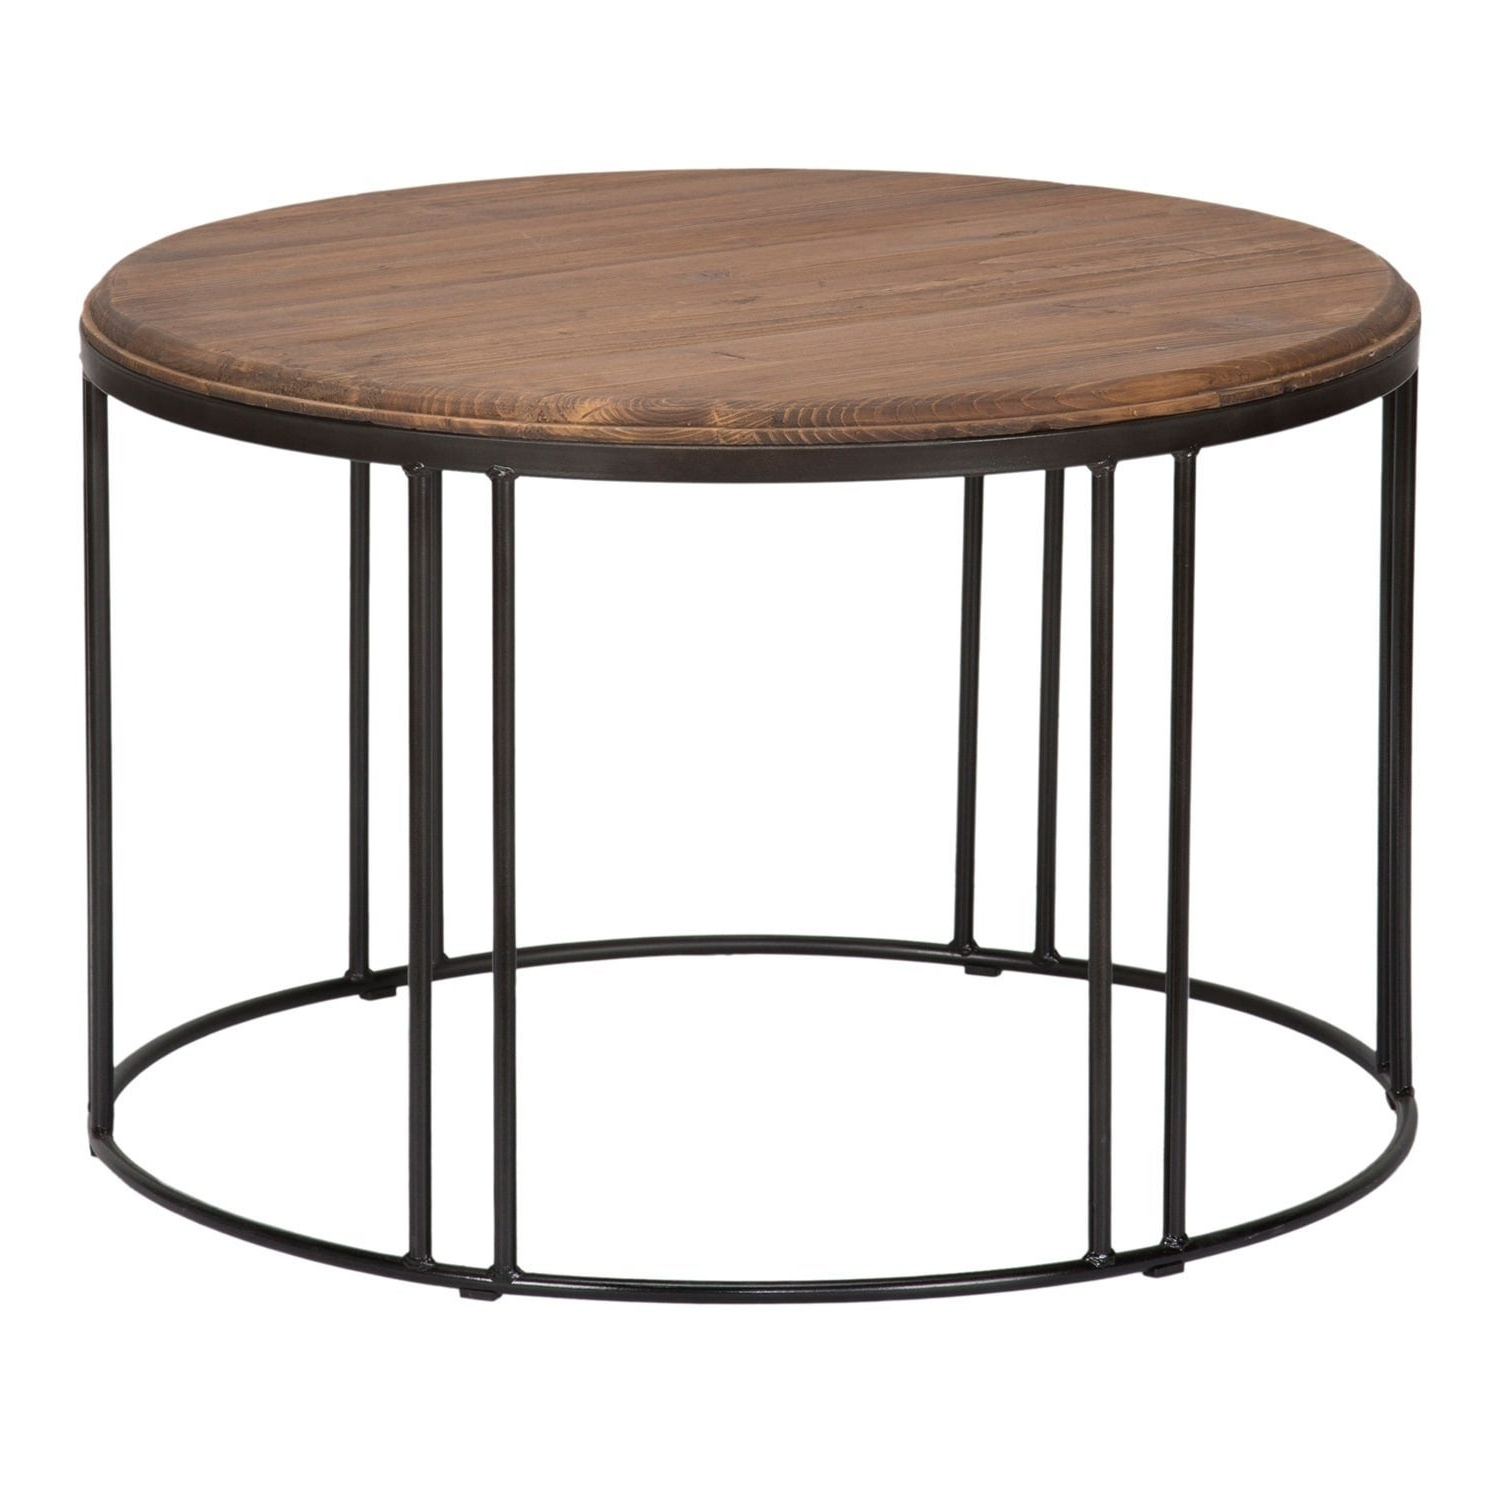 Burnham Reclaimed Wood And Iron Round Coffee Tablekosas Home With Regard To Most Up To Date Burnham Reclaimed Wood And Iron Round Coffee Tables (View 2 of 20)